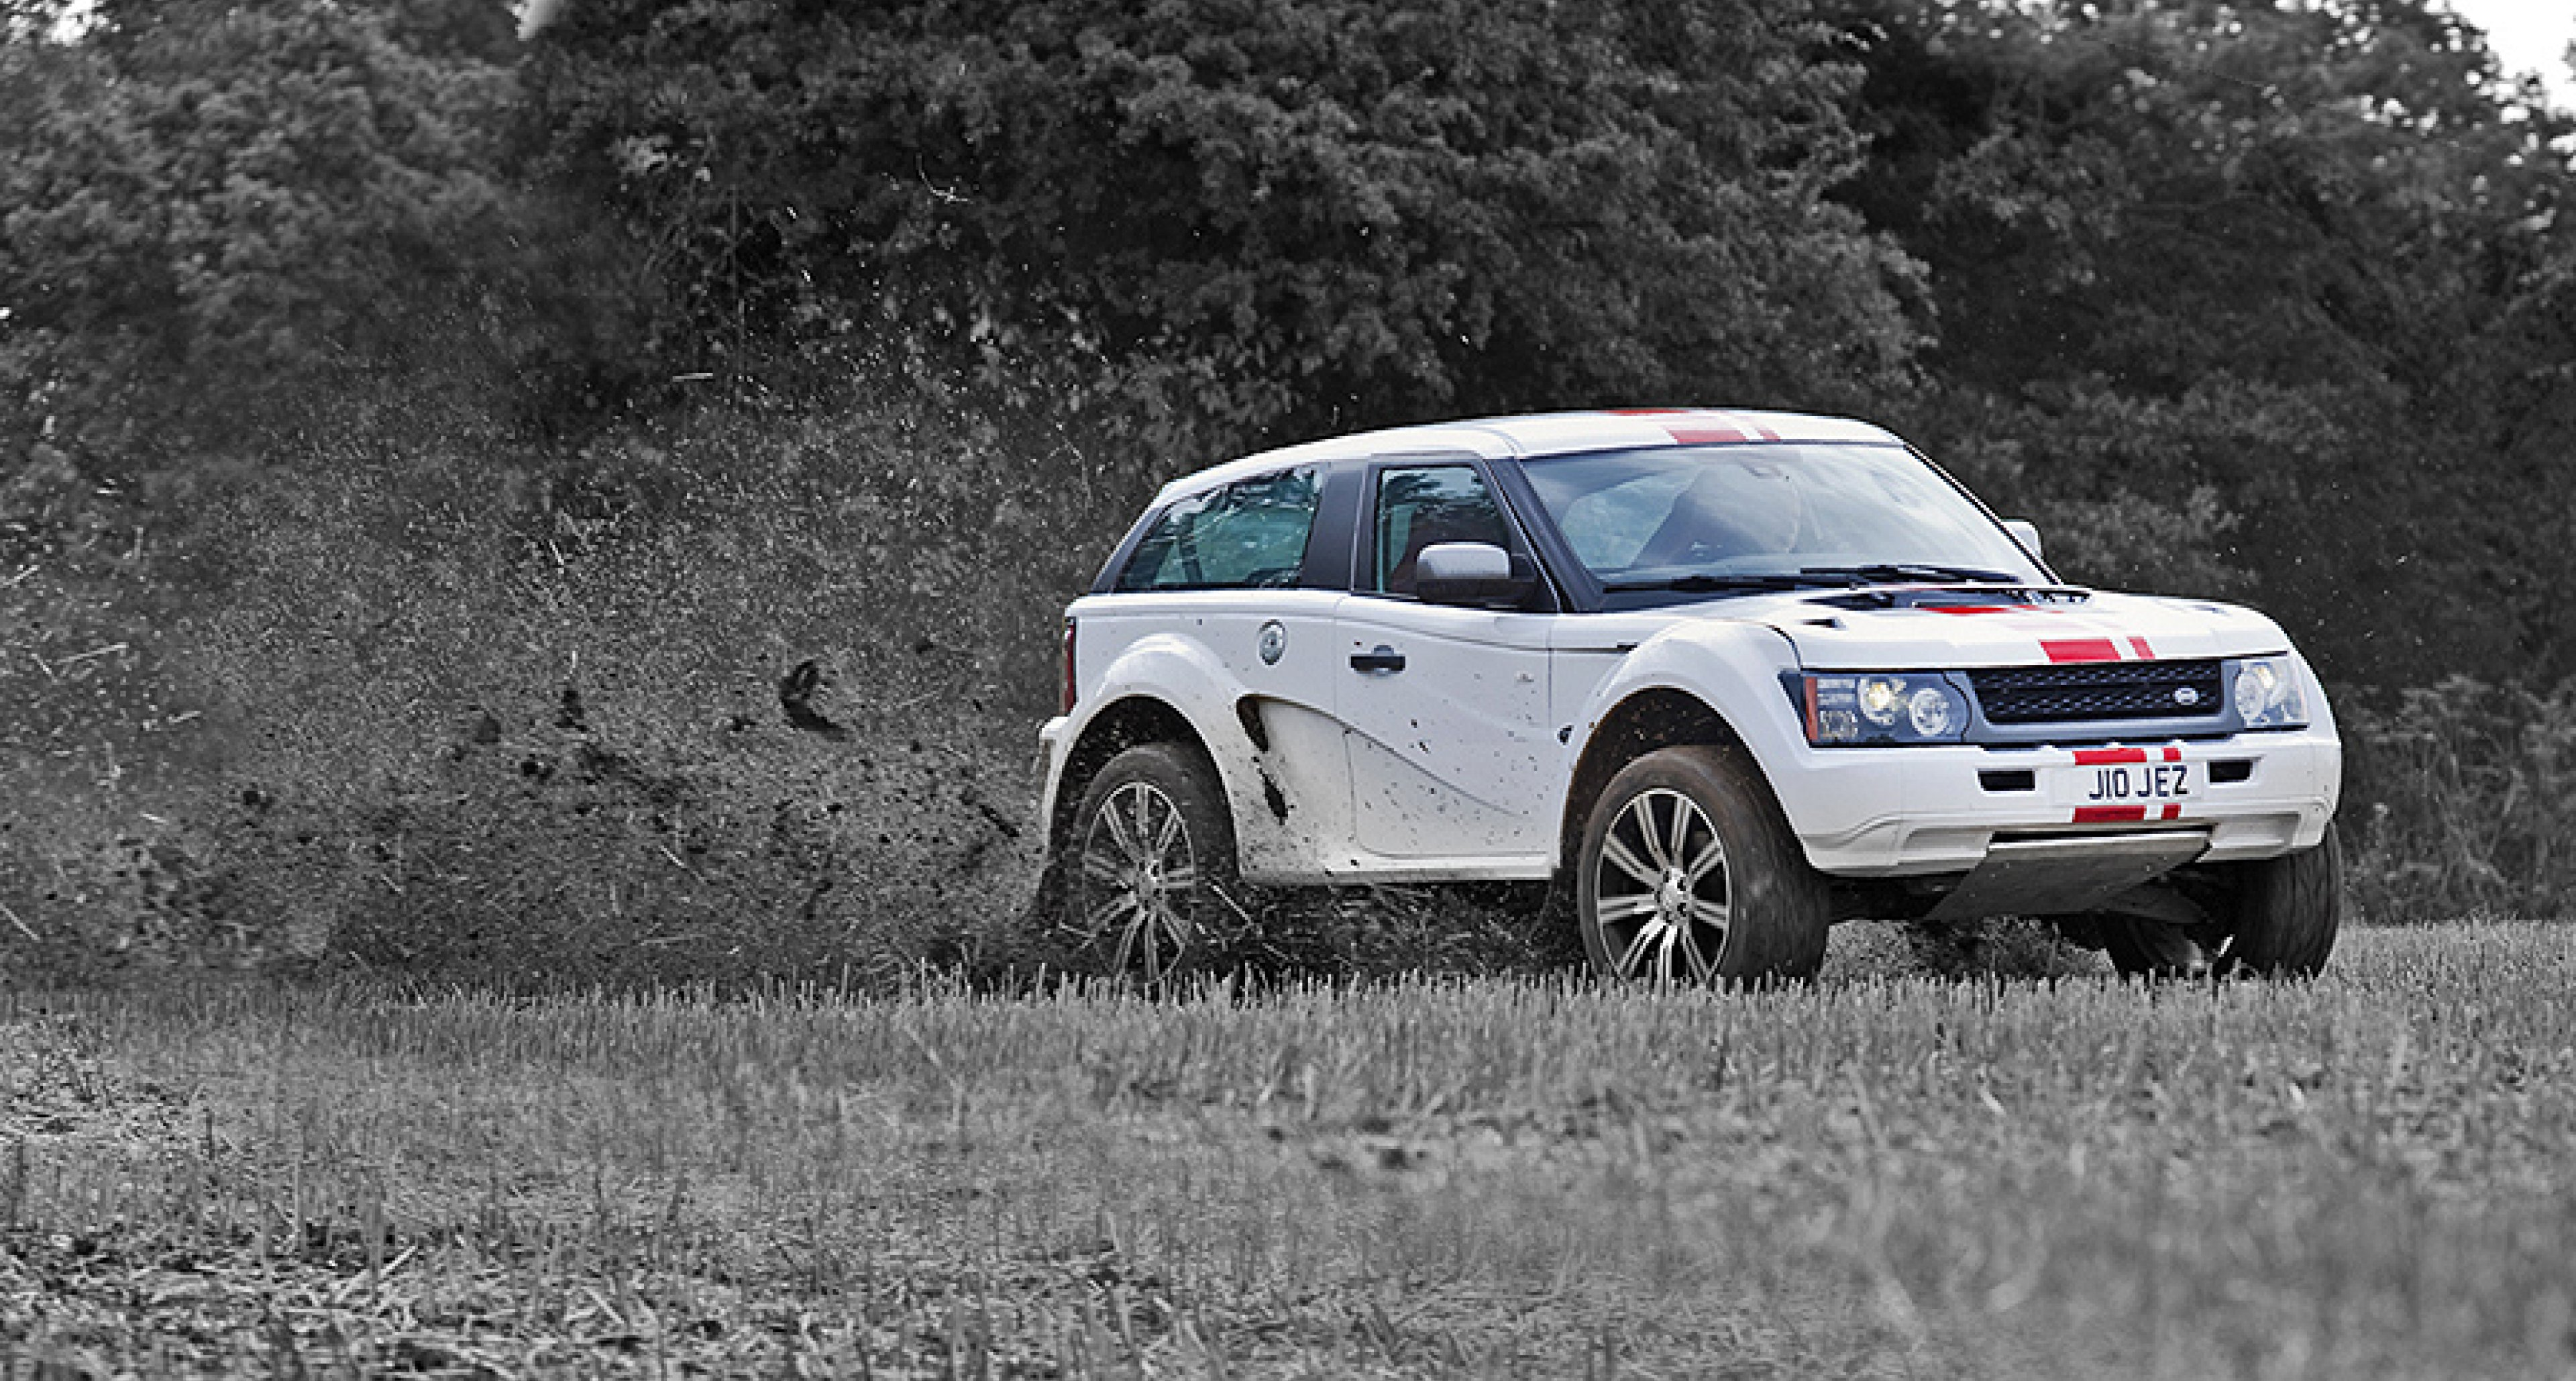 Bowler EXR S: An off-road supercar - for the road | Classic Driver ...